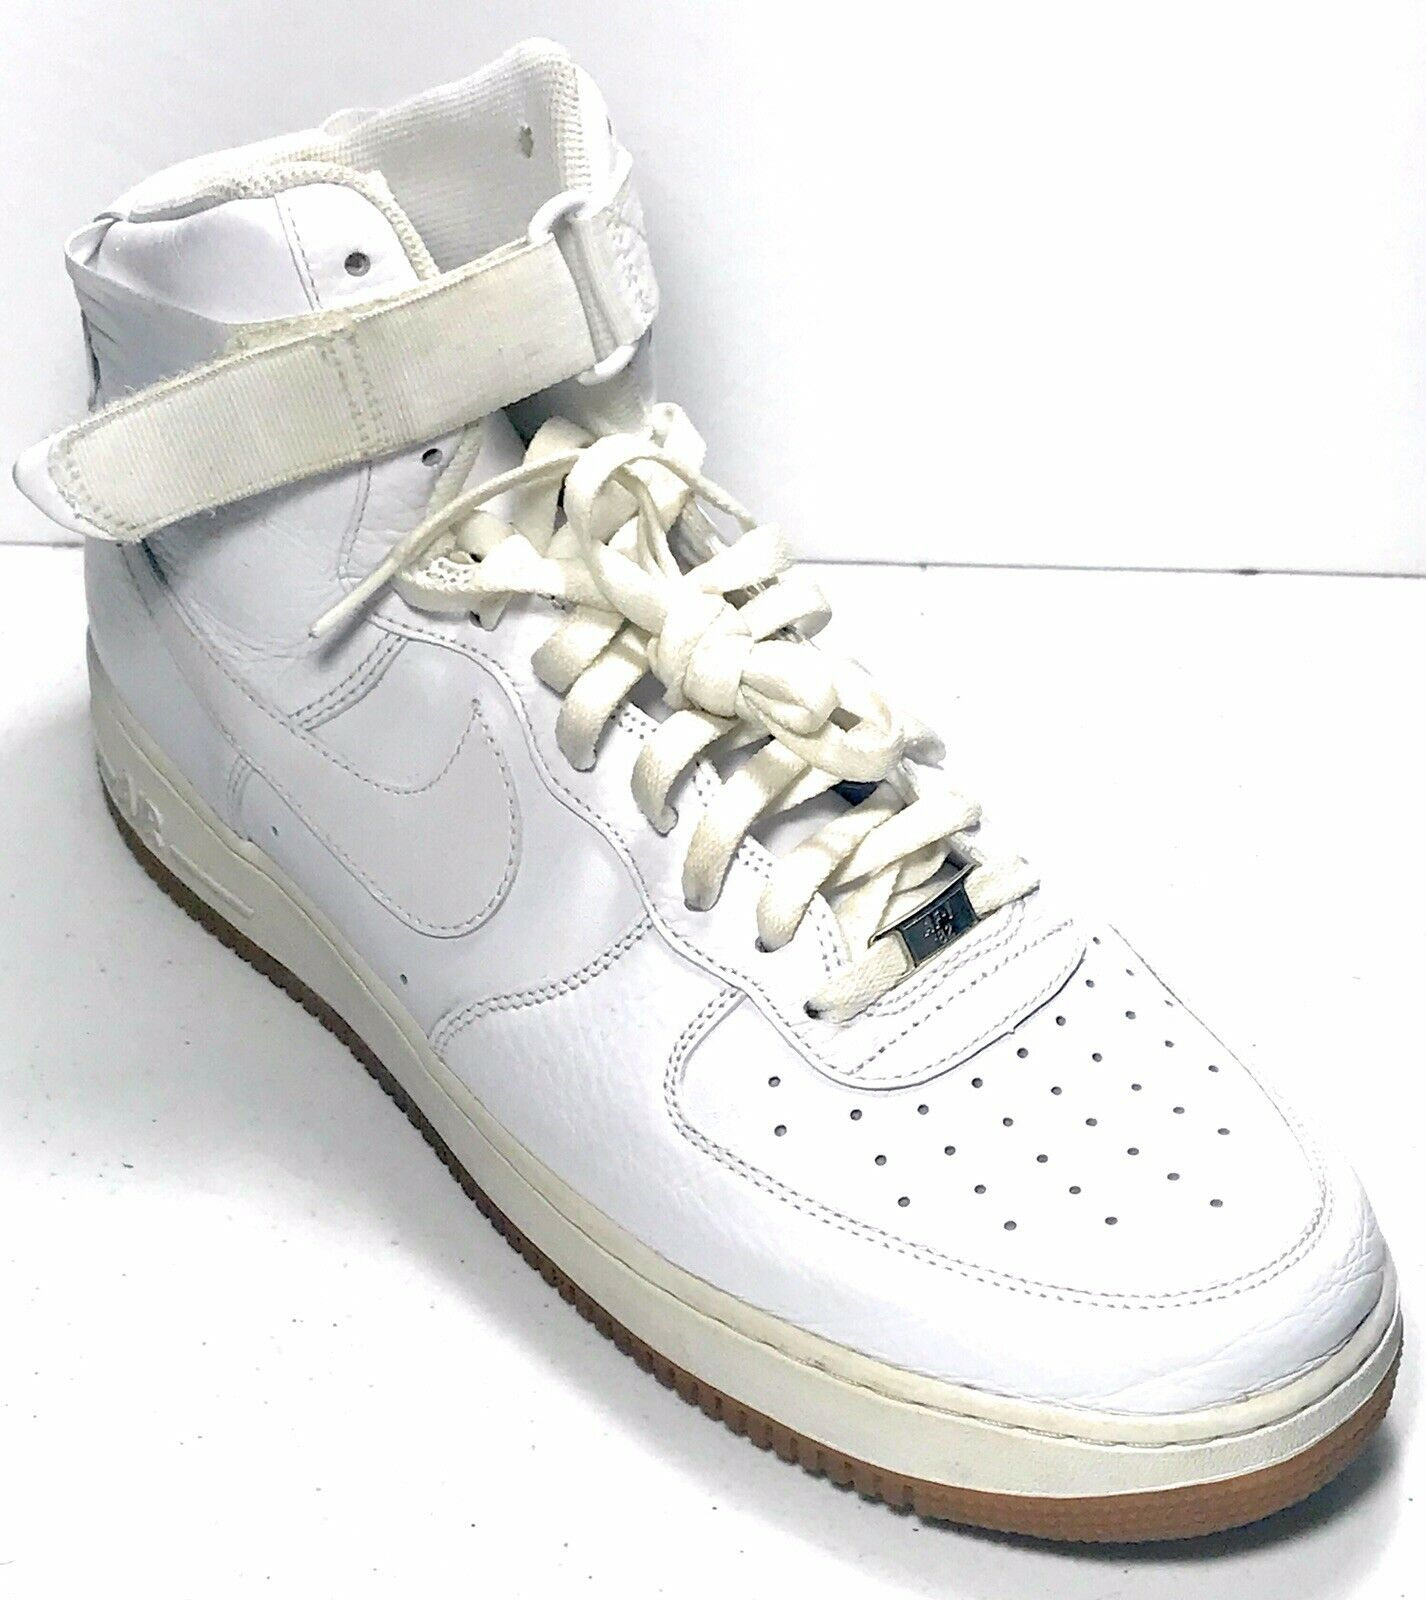 Rare DS NIB Nike Air Force 1 High Top White Sneakers Gum Sole 315121 102 Size 14